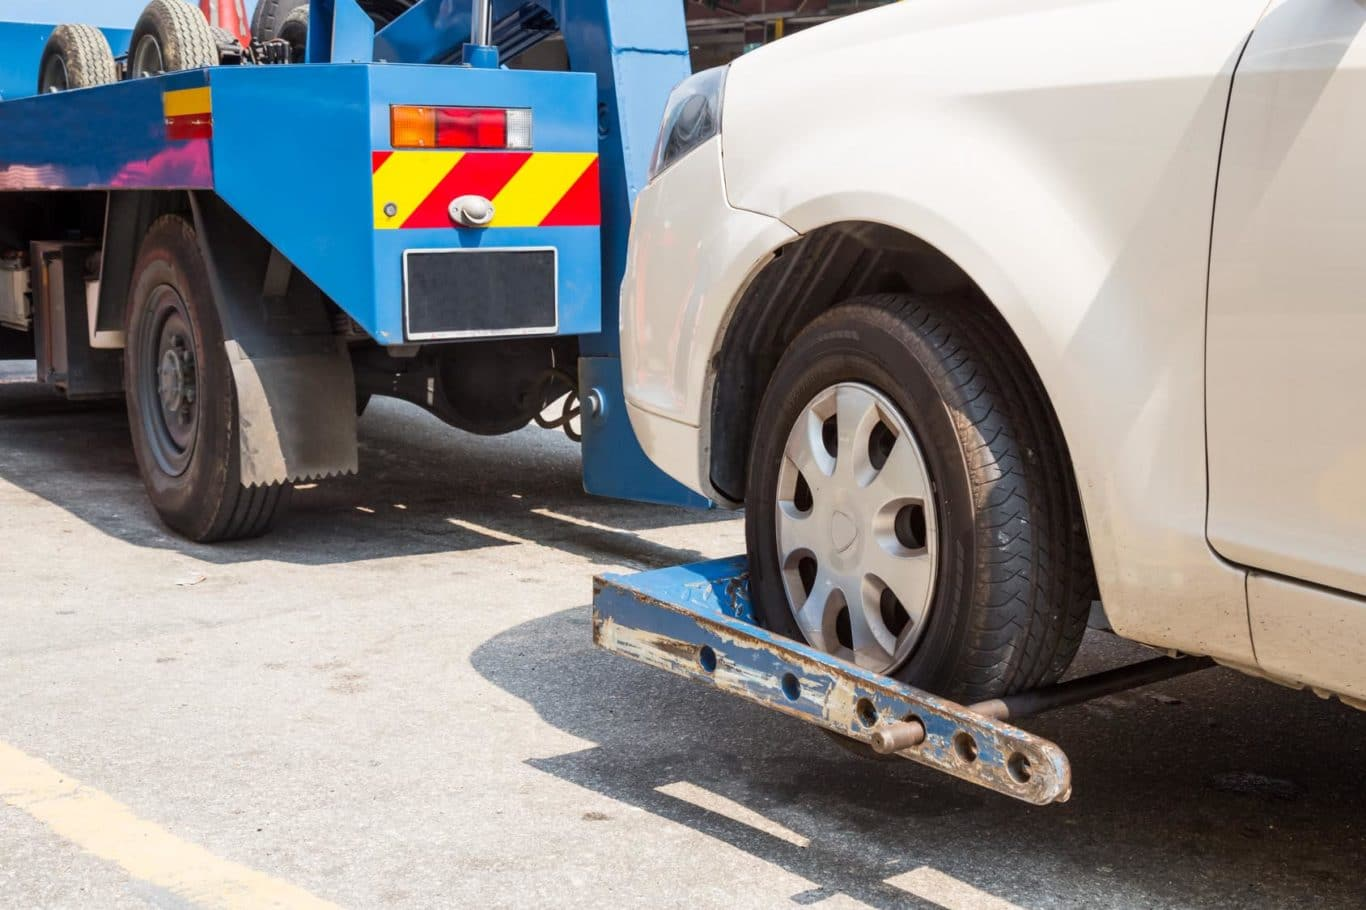 Mulhuddart expert Car Towing services